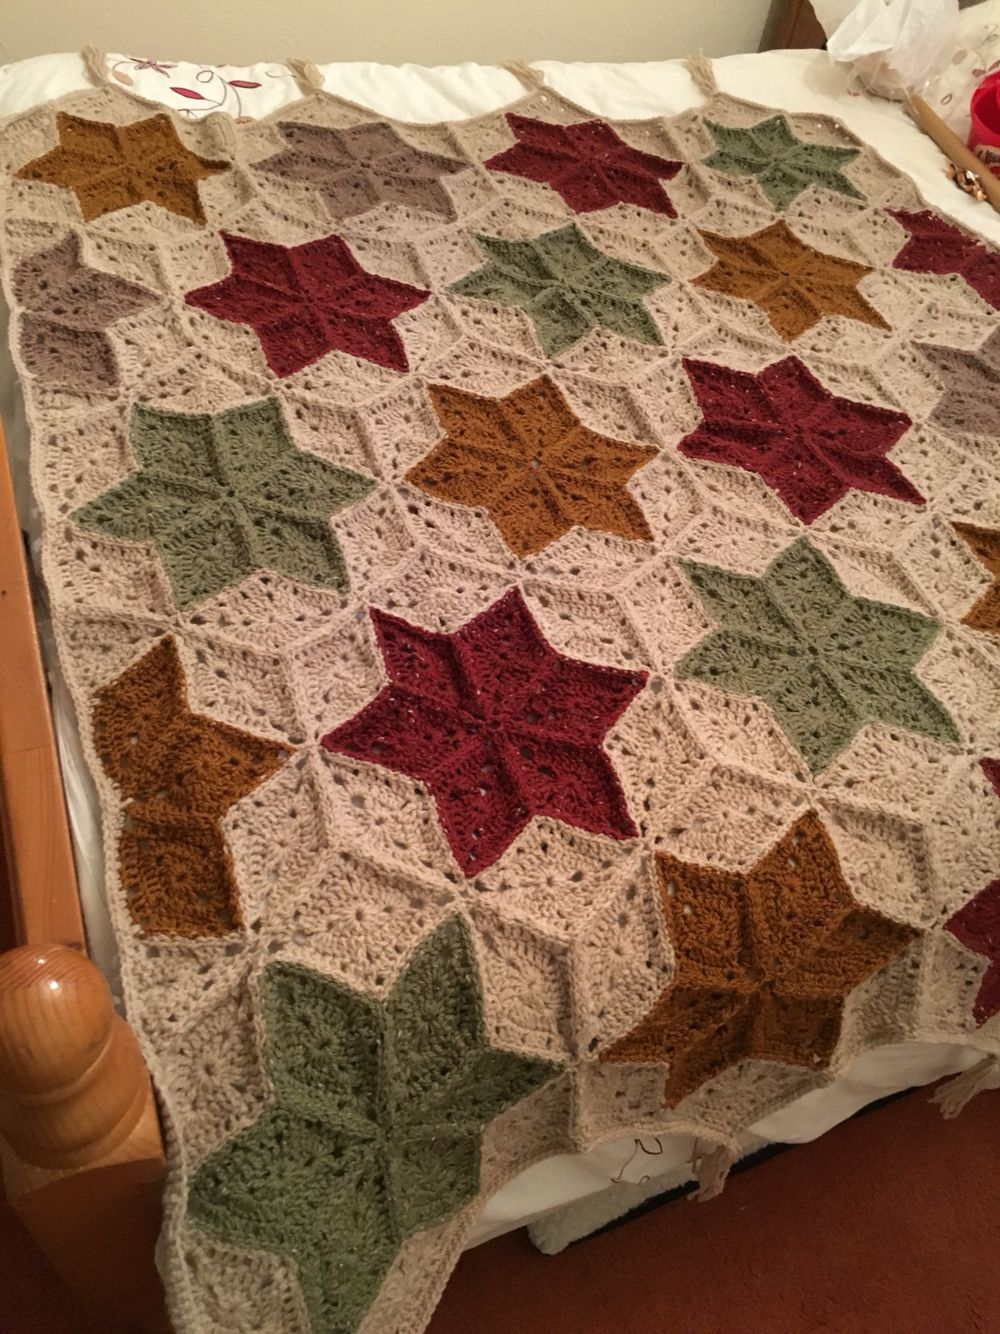 Star crochet blanket/afghan. Made using Aran weight yarn and a ...